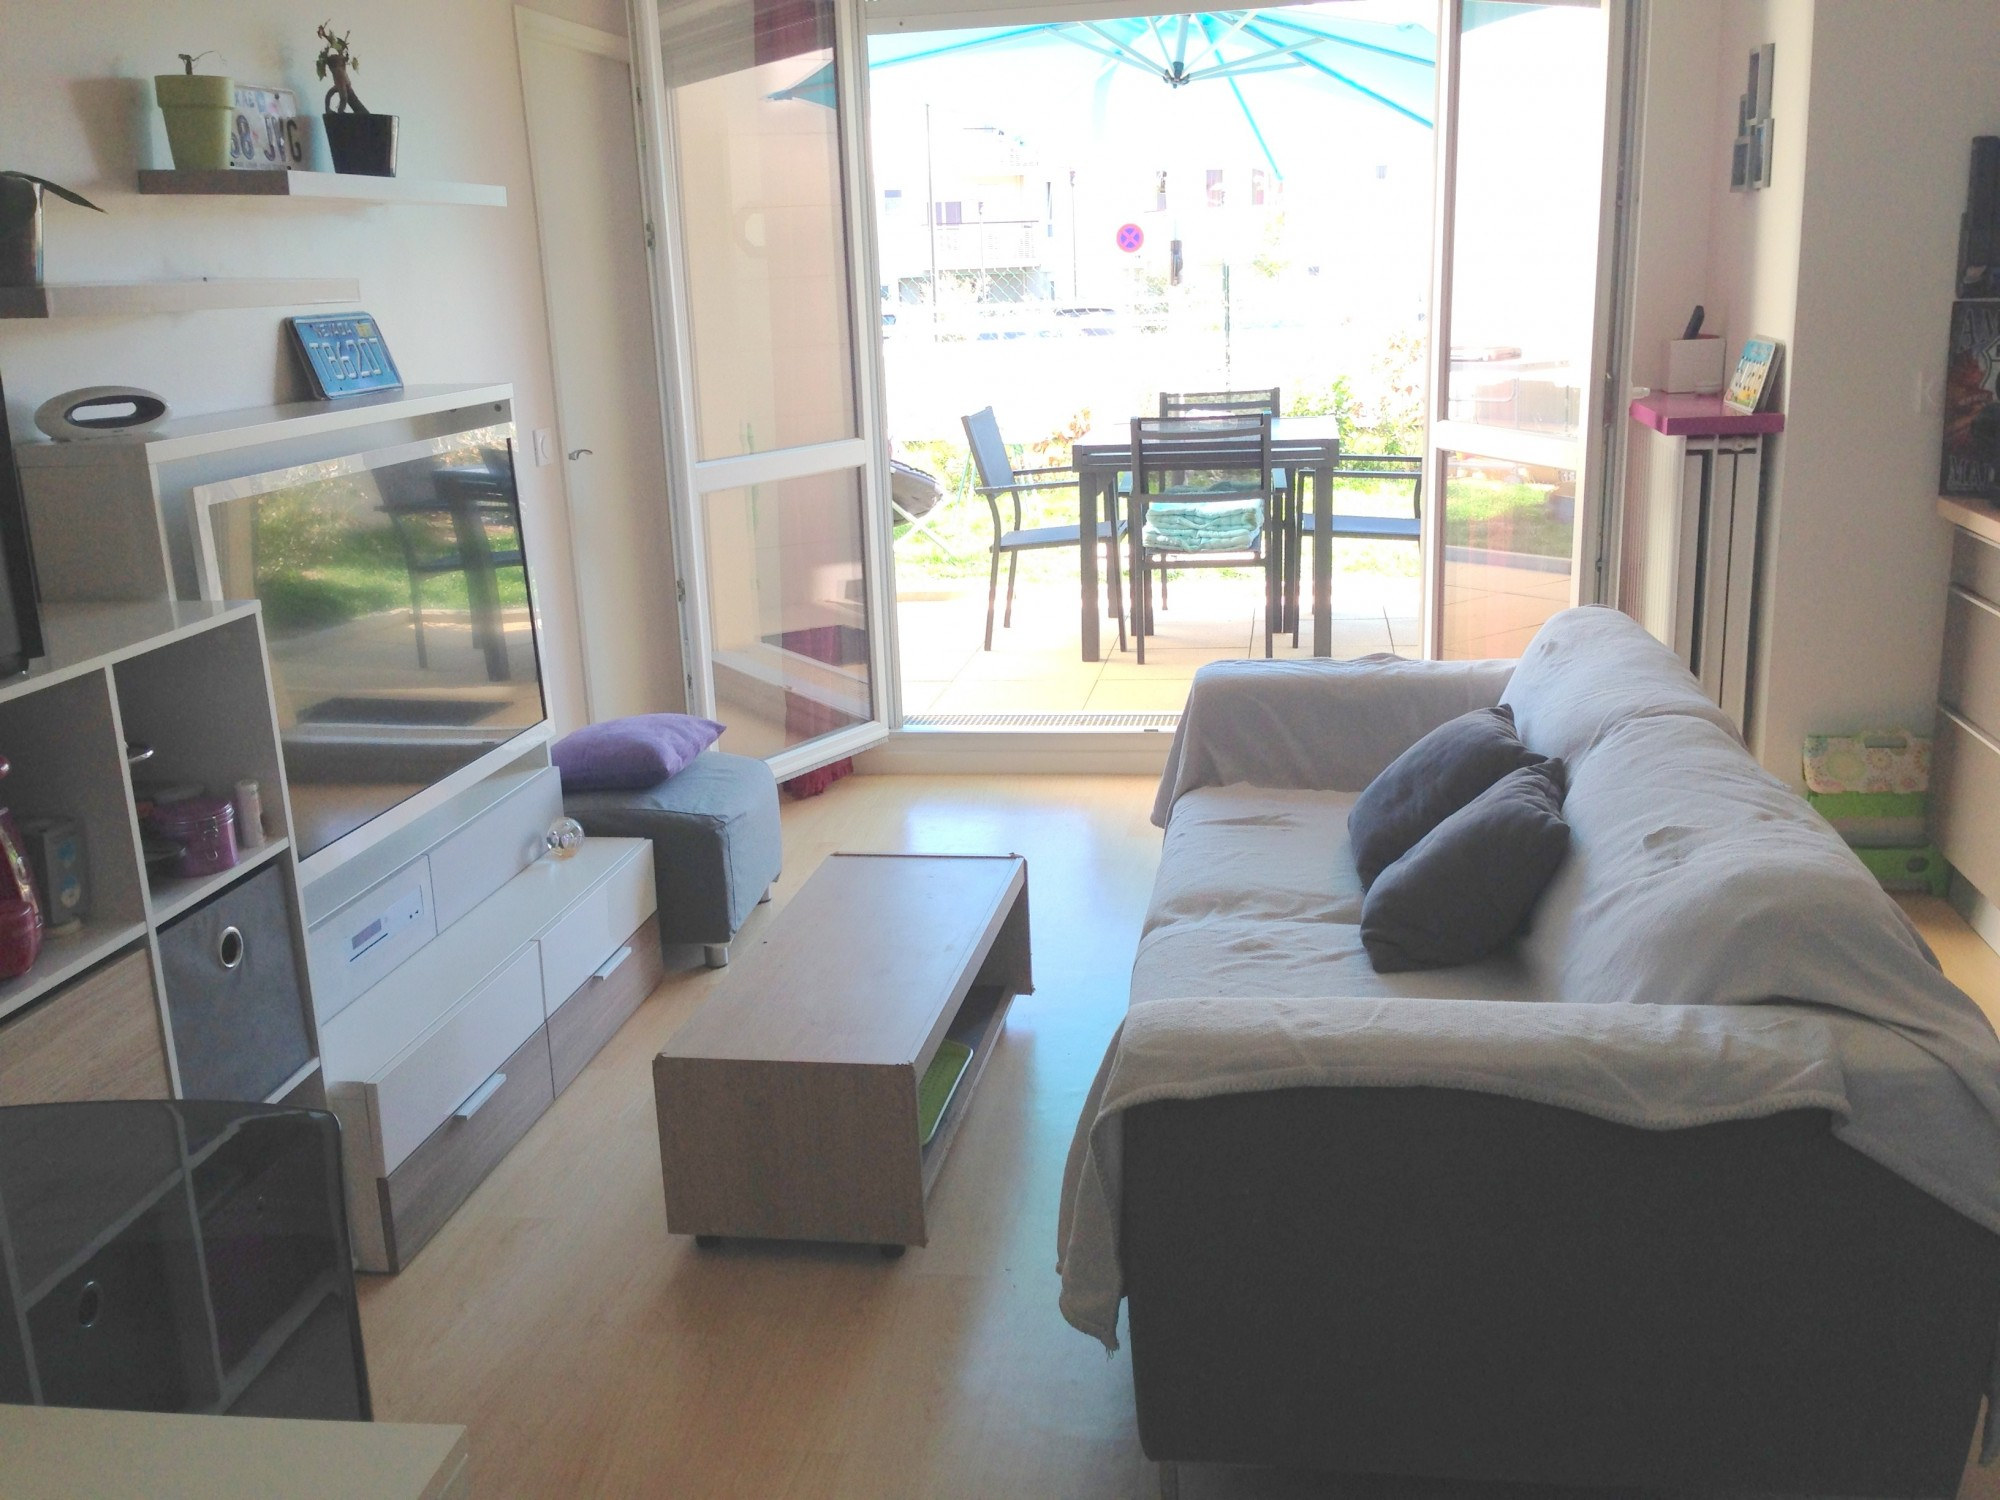 Ventes Appartement en Rez-de-jardin T2 F2 ECQUEVILLY construction ...